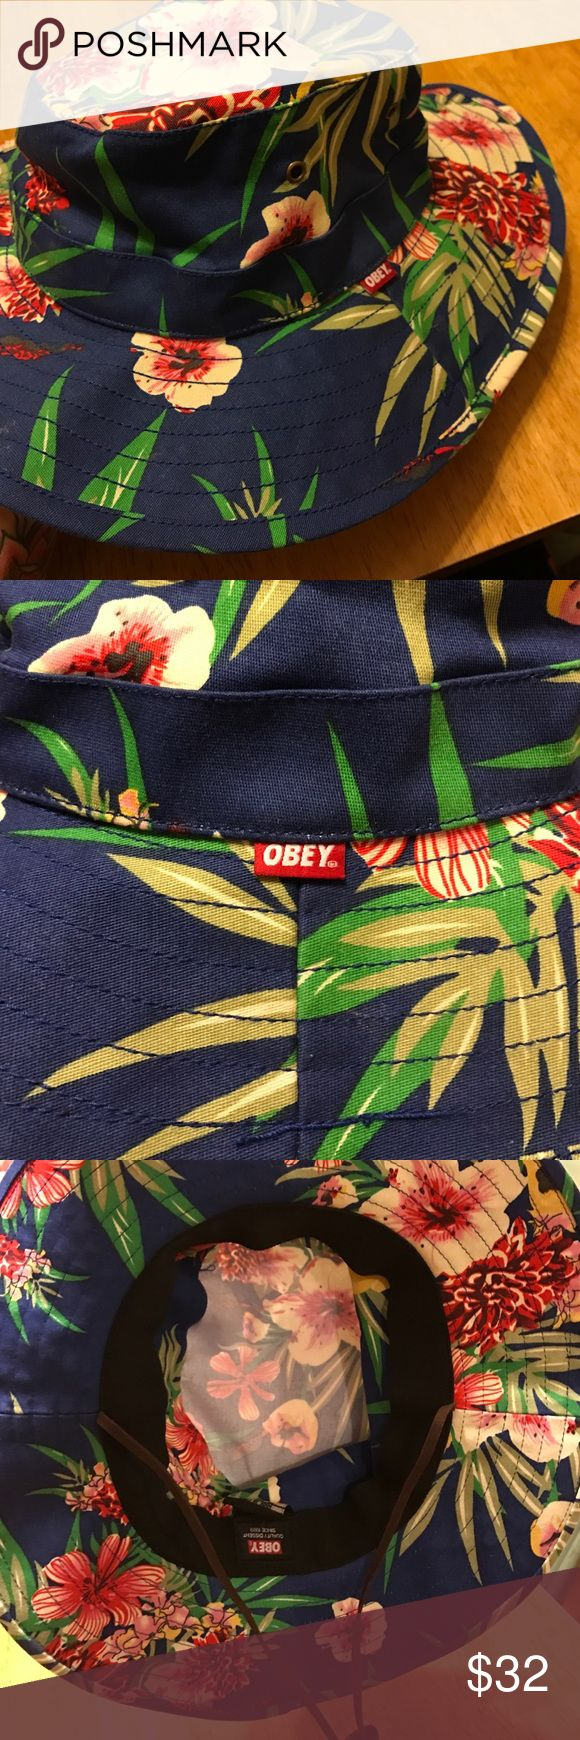 Floral Obey Bucket Hat Obey Floral Bucket Hat With A Strap. Worn once, open to offers! Obey Accessories Hats